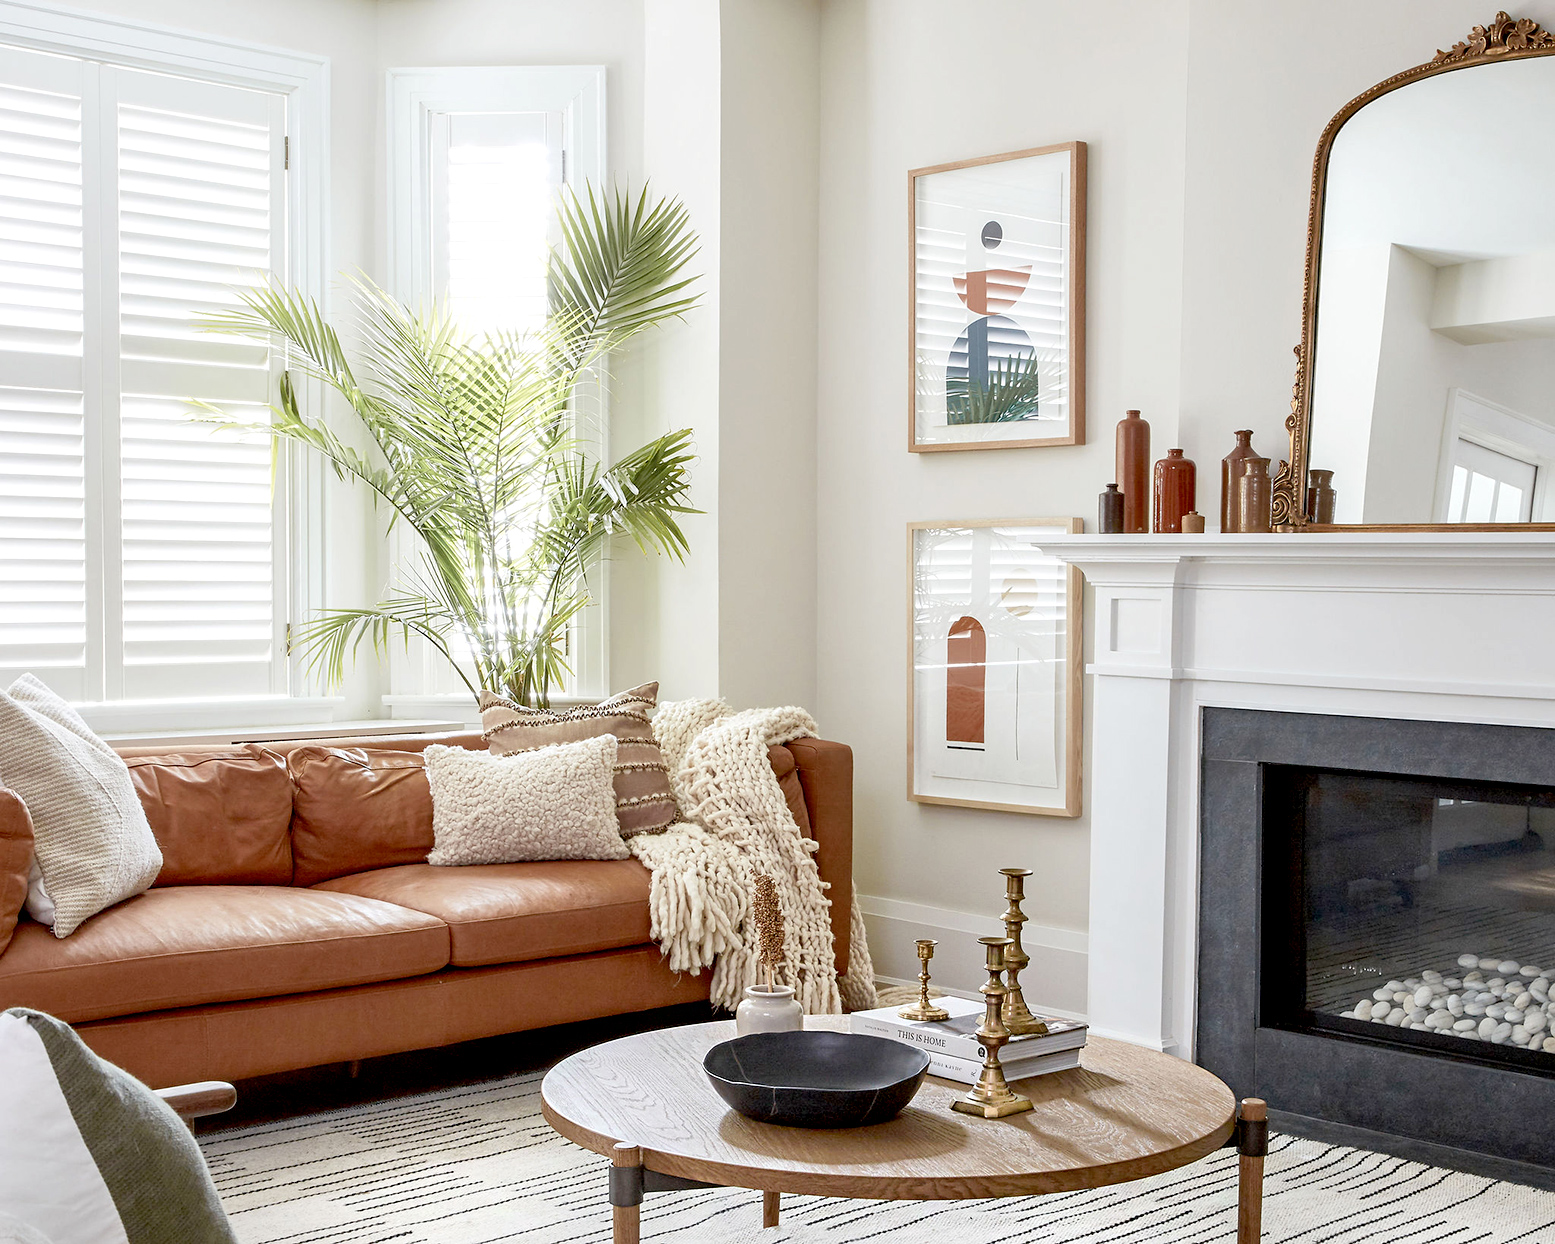 Living room with fireplace and leather sofa